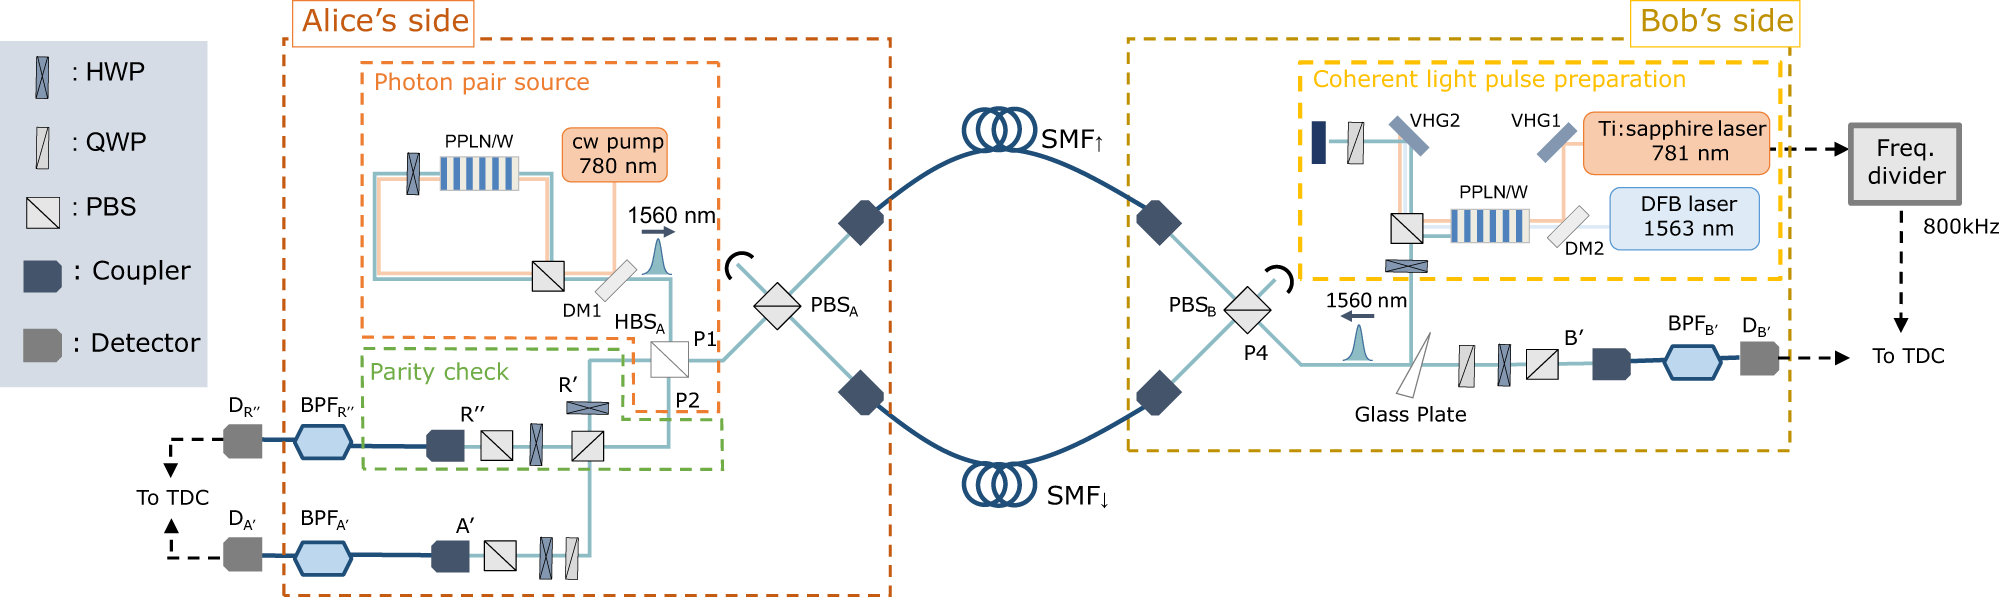 At Alice's photon pair source, the cw pump light at 780nm for SPDC is prepared by second-harmonic generation of the light at 1560nm from an external cavity diode laser with a linewidth of 1.8kHz. At Bob's ancillary photon source, the pulsed light at 781nm is filtered by a volume holographic grating (VHG1) with a bandwidth of 0.3nm and the pulsed light and the cw pump light at 1563nm are combined by the DM2 and coupled into a PPLN/W. At the data collection stage by TDC, the repetition rate of the electric signal from the Ti:S pulse laser is divided into 800kHz to reduce the amount of data for avoiding the data overflow.